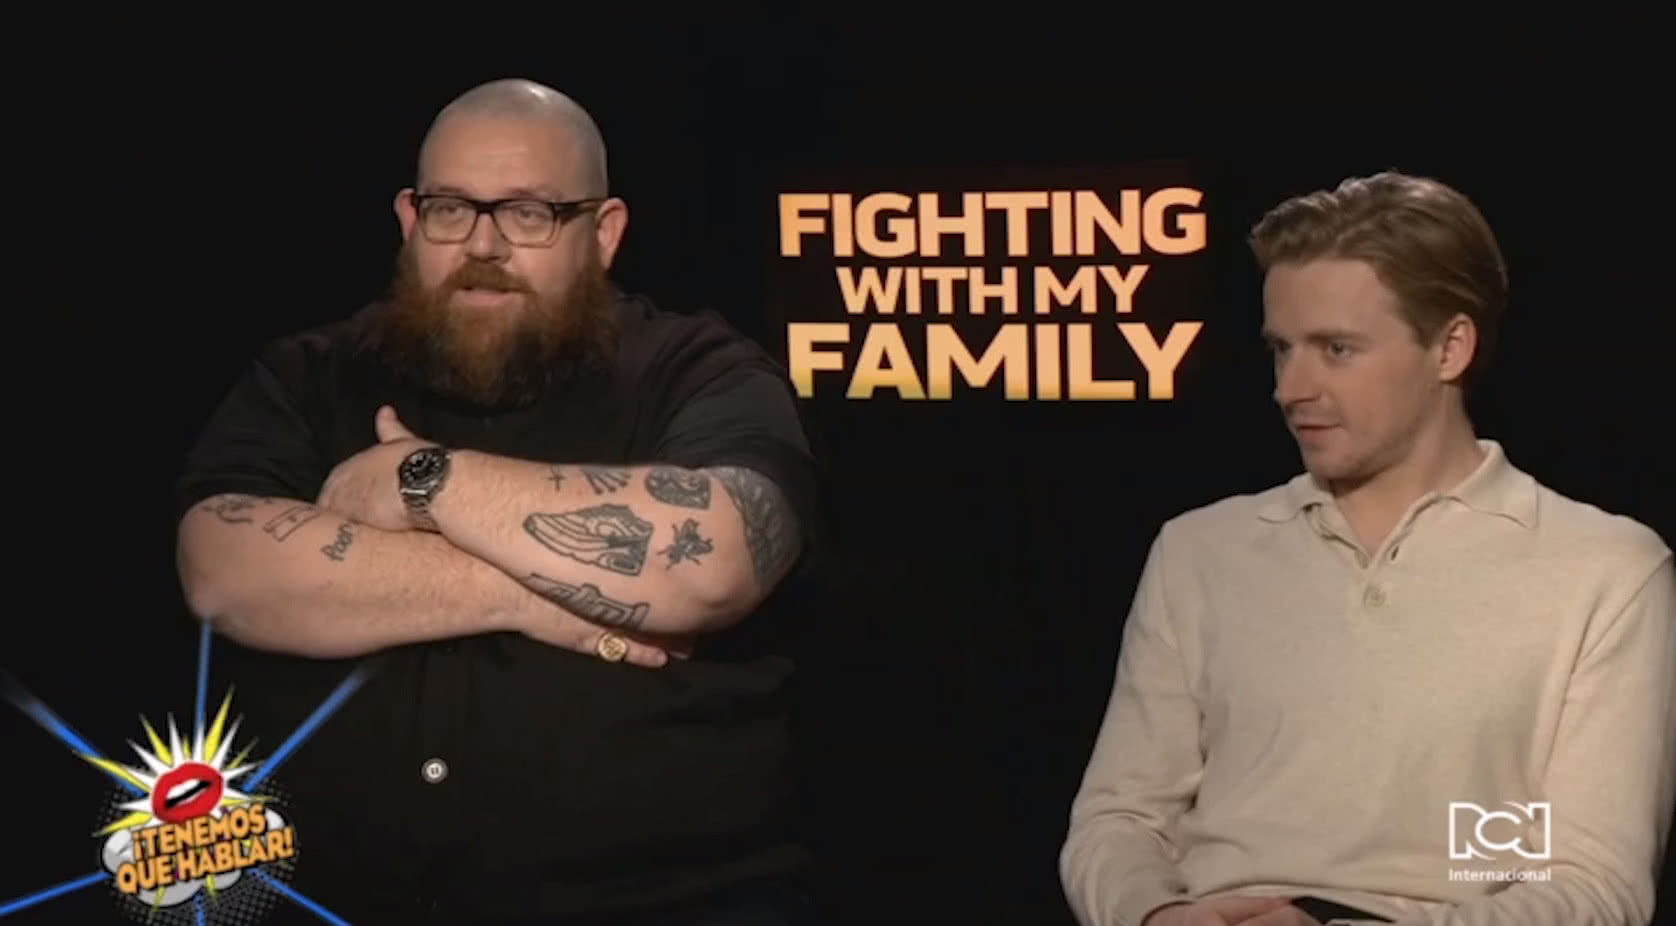 jack-lowden-y-nick-frost-en-fighting-with-my-family.jpg